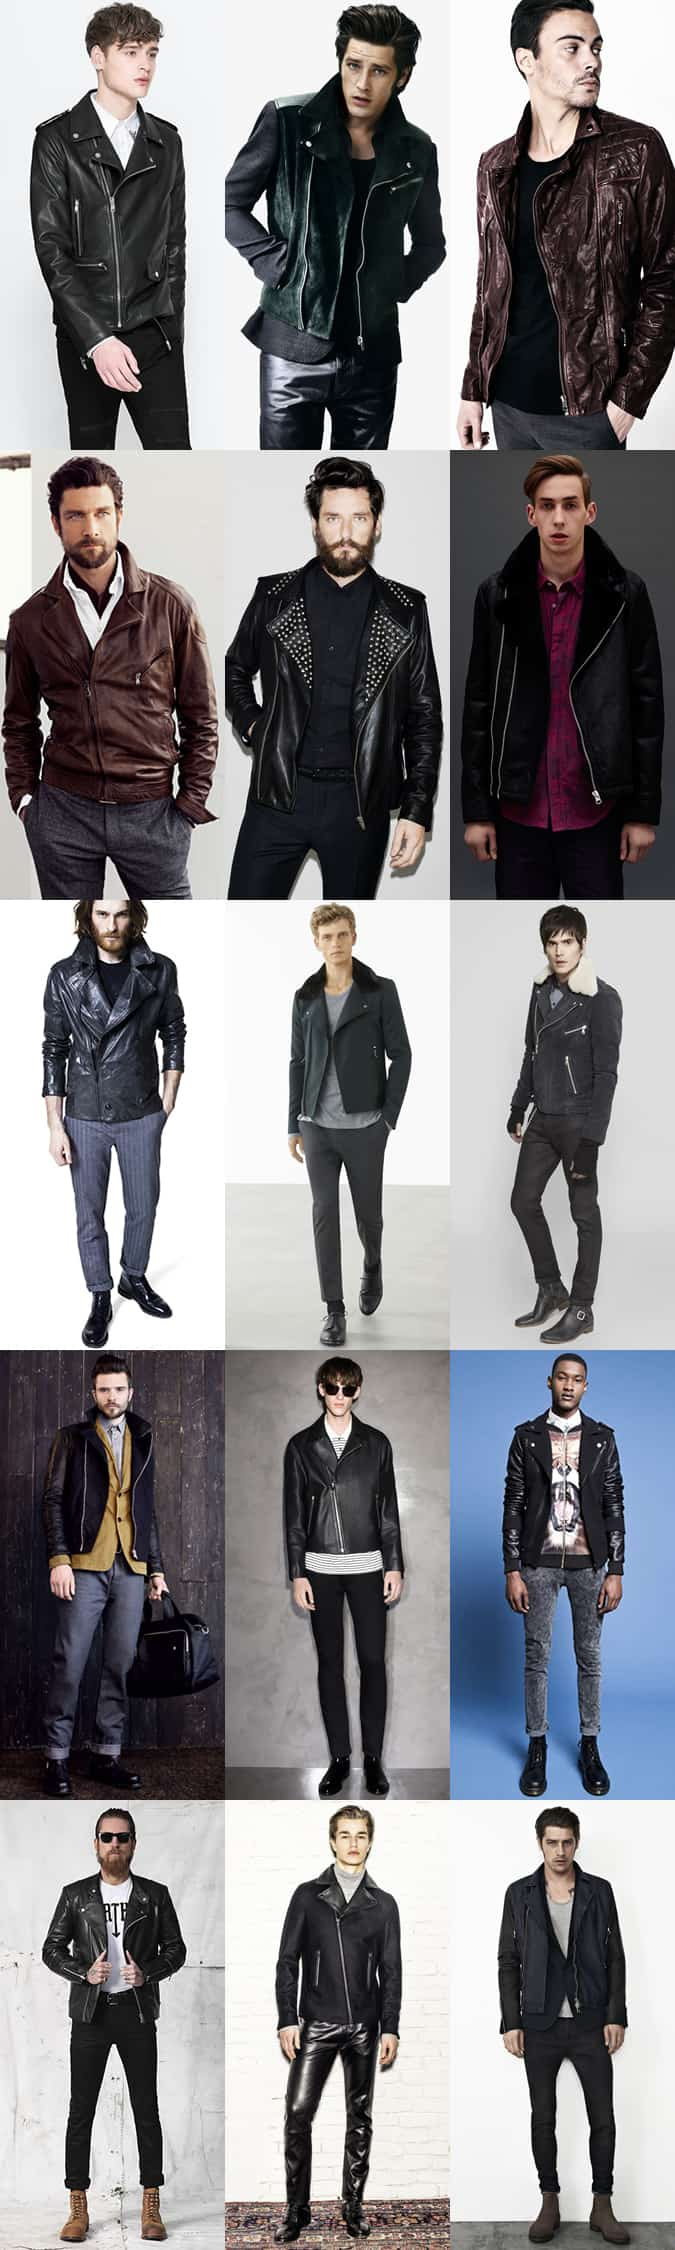 Men's Leather Biker Jacket Outfit Inspiration Lookbook